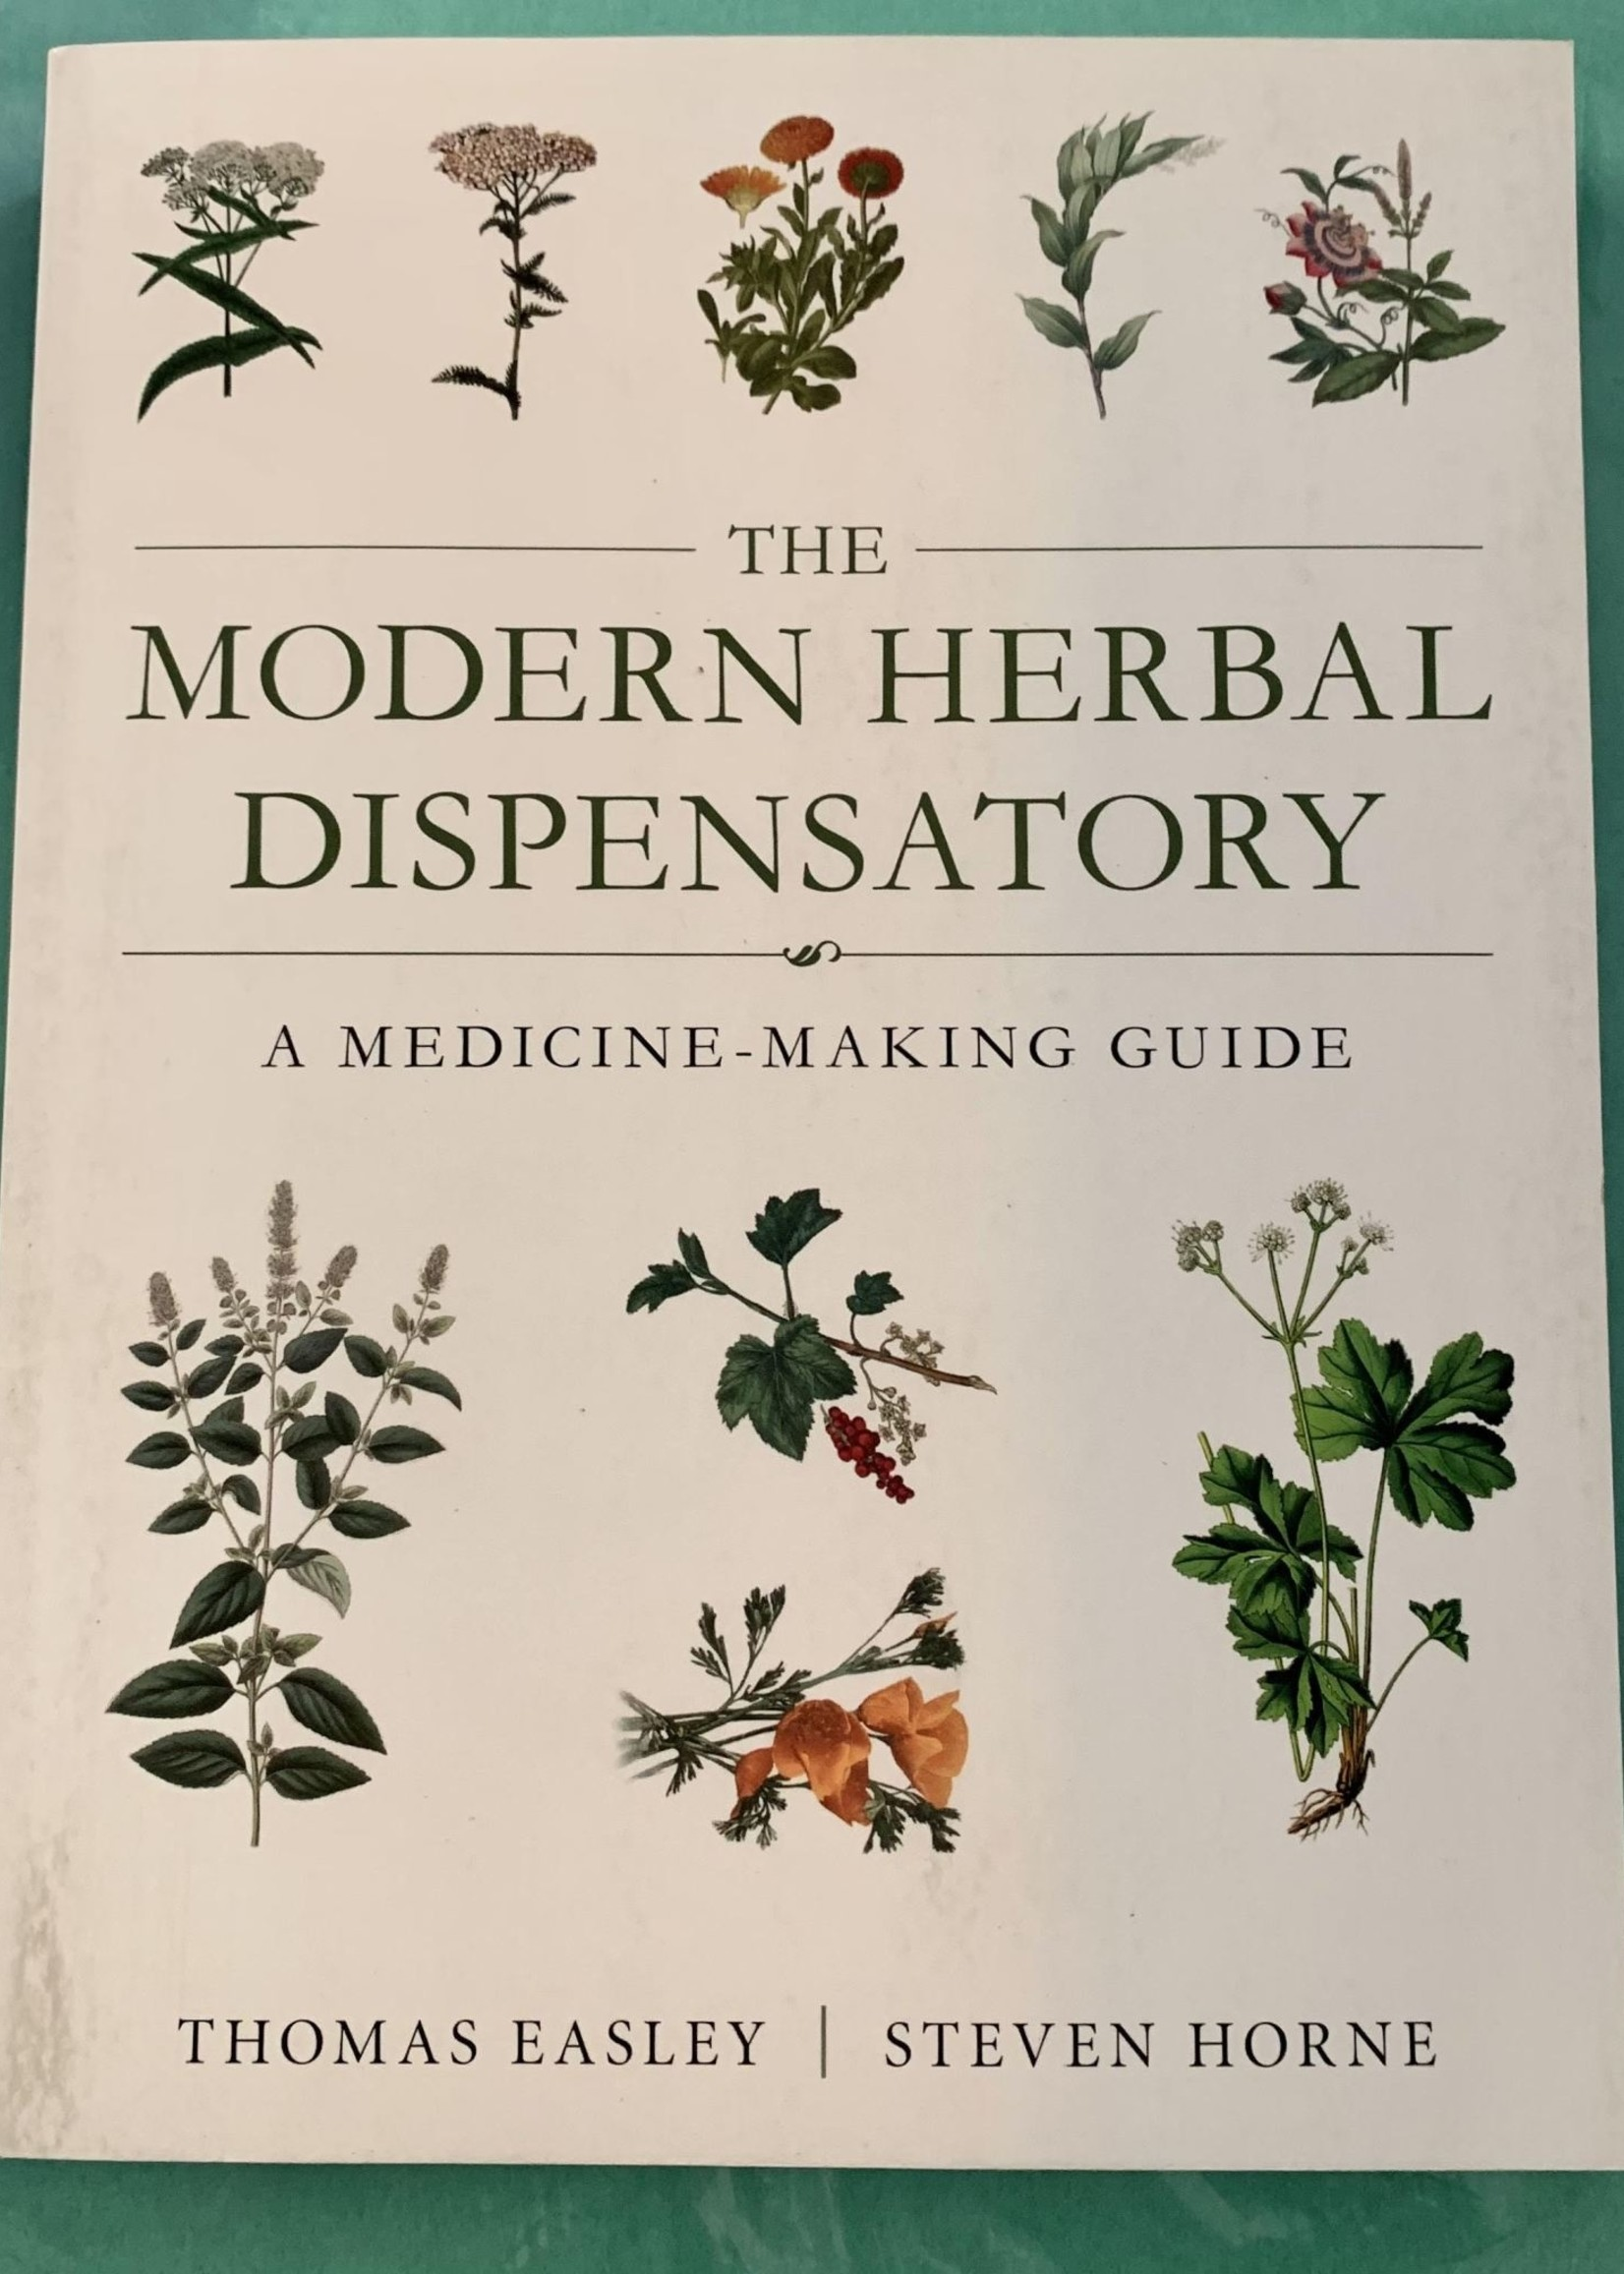 The Modern Herbal Dispensatory A MEDICINE-MAKING GUIDE - By THOMAS EASLEY and STEVEN HORNE